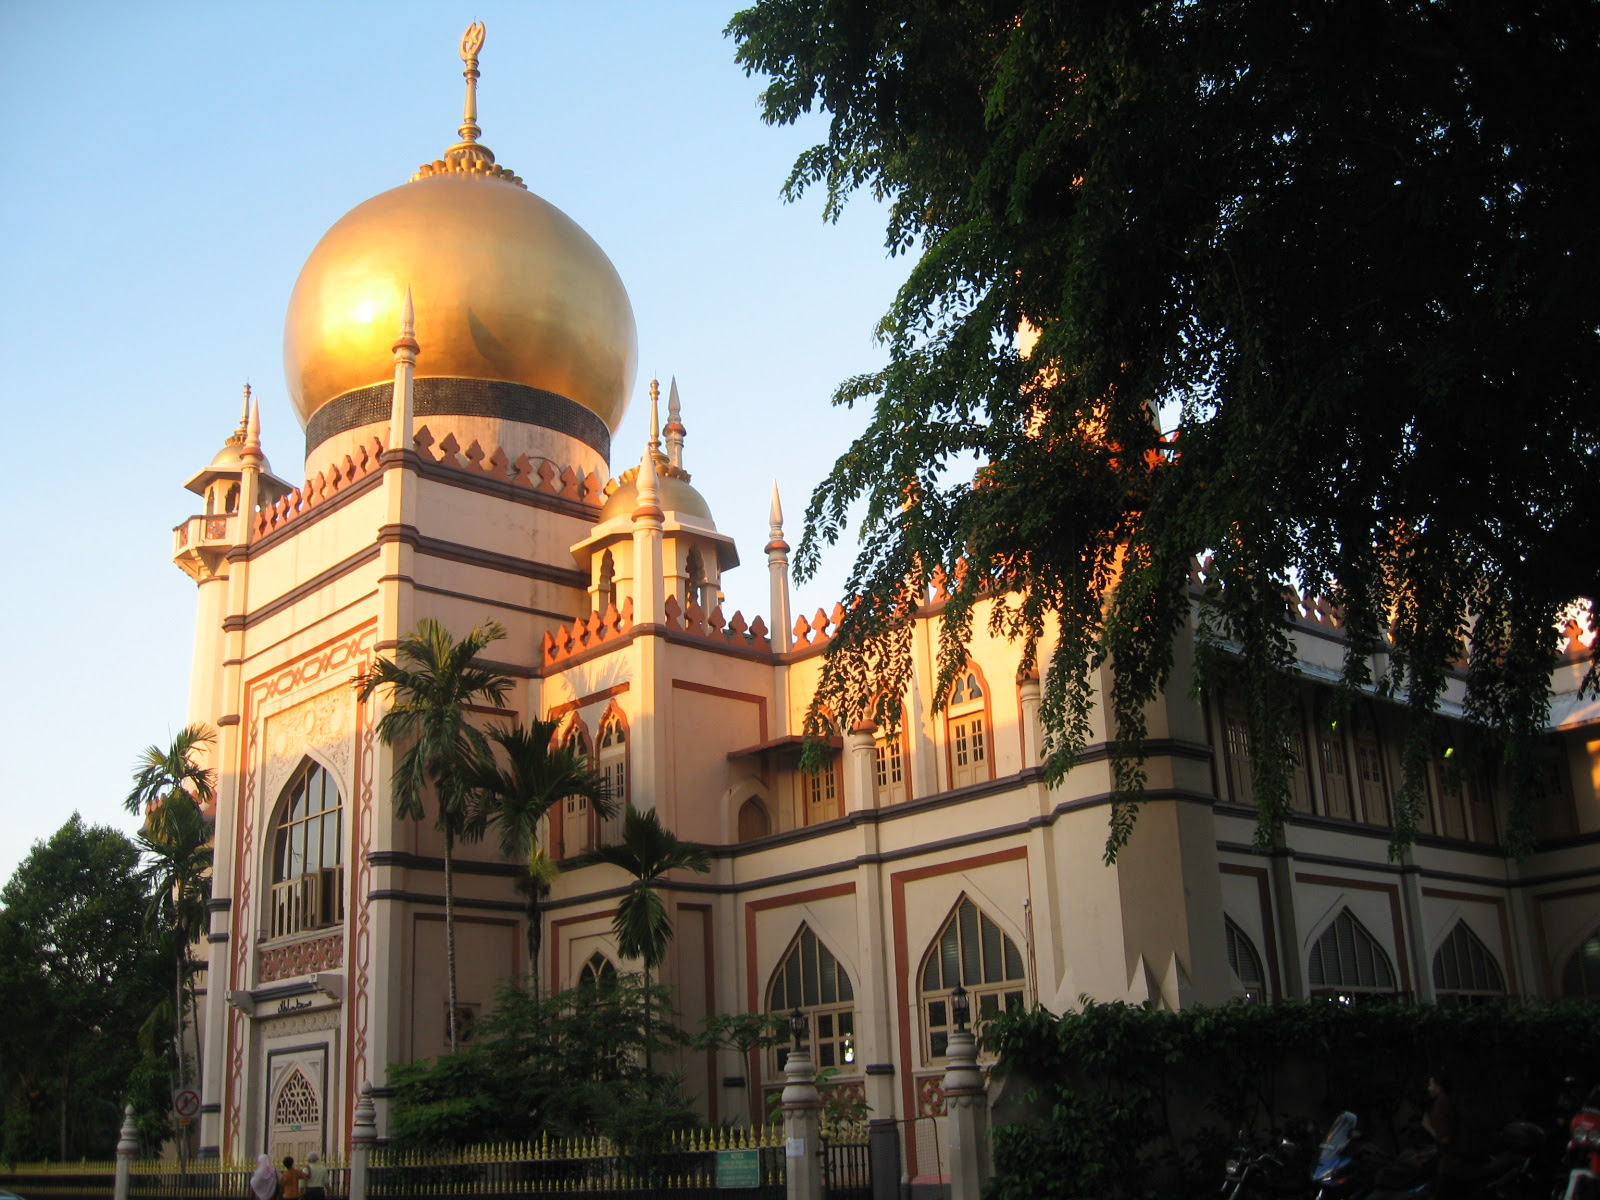 Sultan Mosque Singapore Location Attractions Map,Location Attractions Map of Sultan Mosque Singapore,Sultan Mosque Singapore accommodation destinations hotels map reviews photos pictures